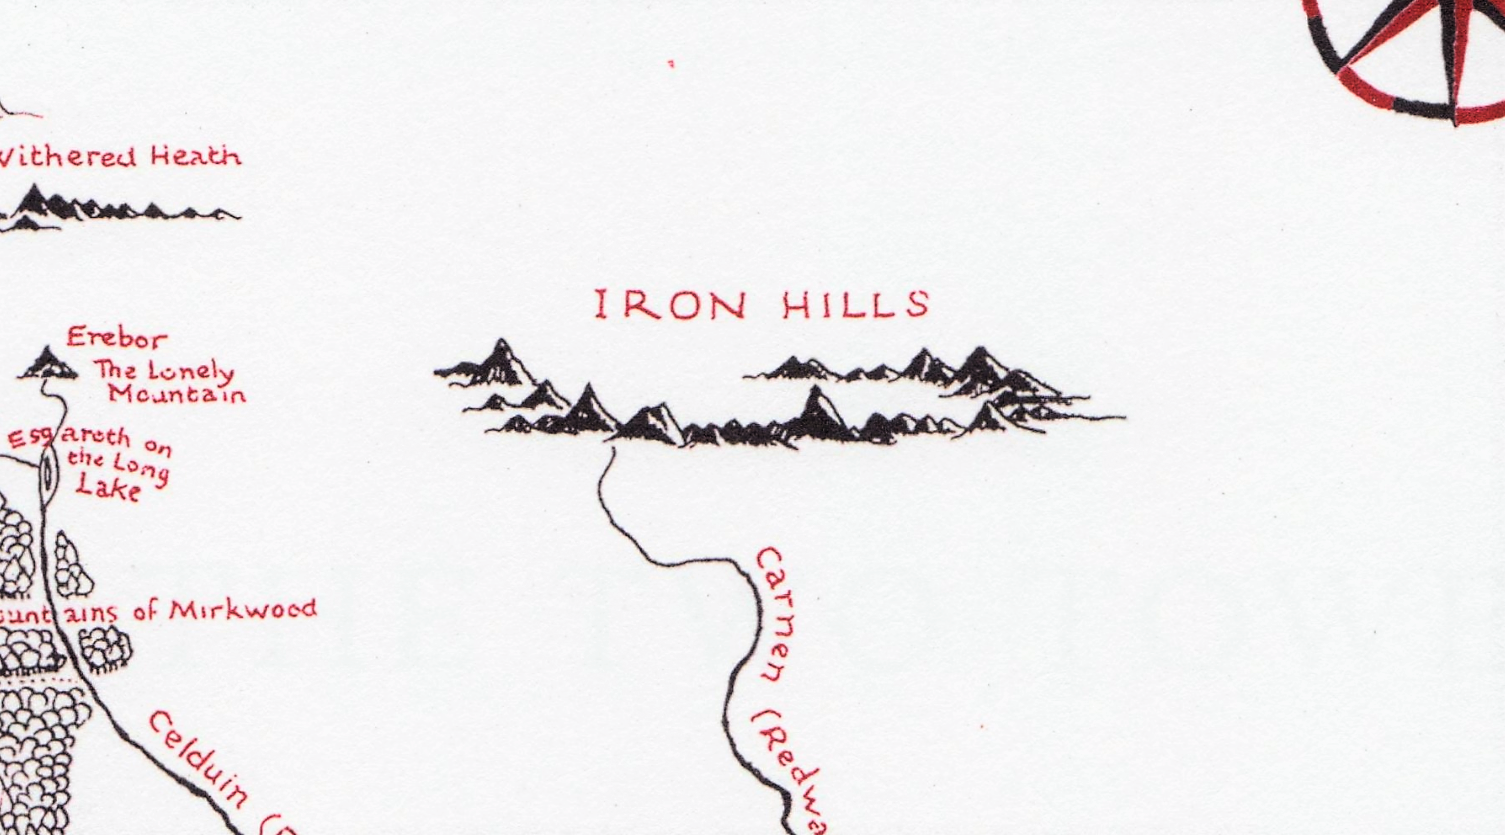 Iron Hills | The One Wiki to Rule Them All | FANDOM powered by Wikia